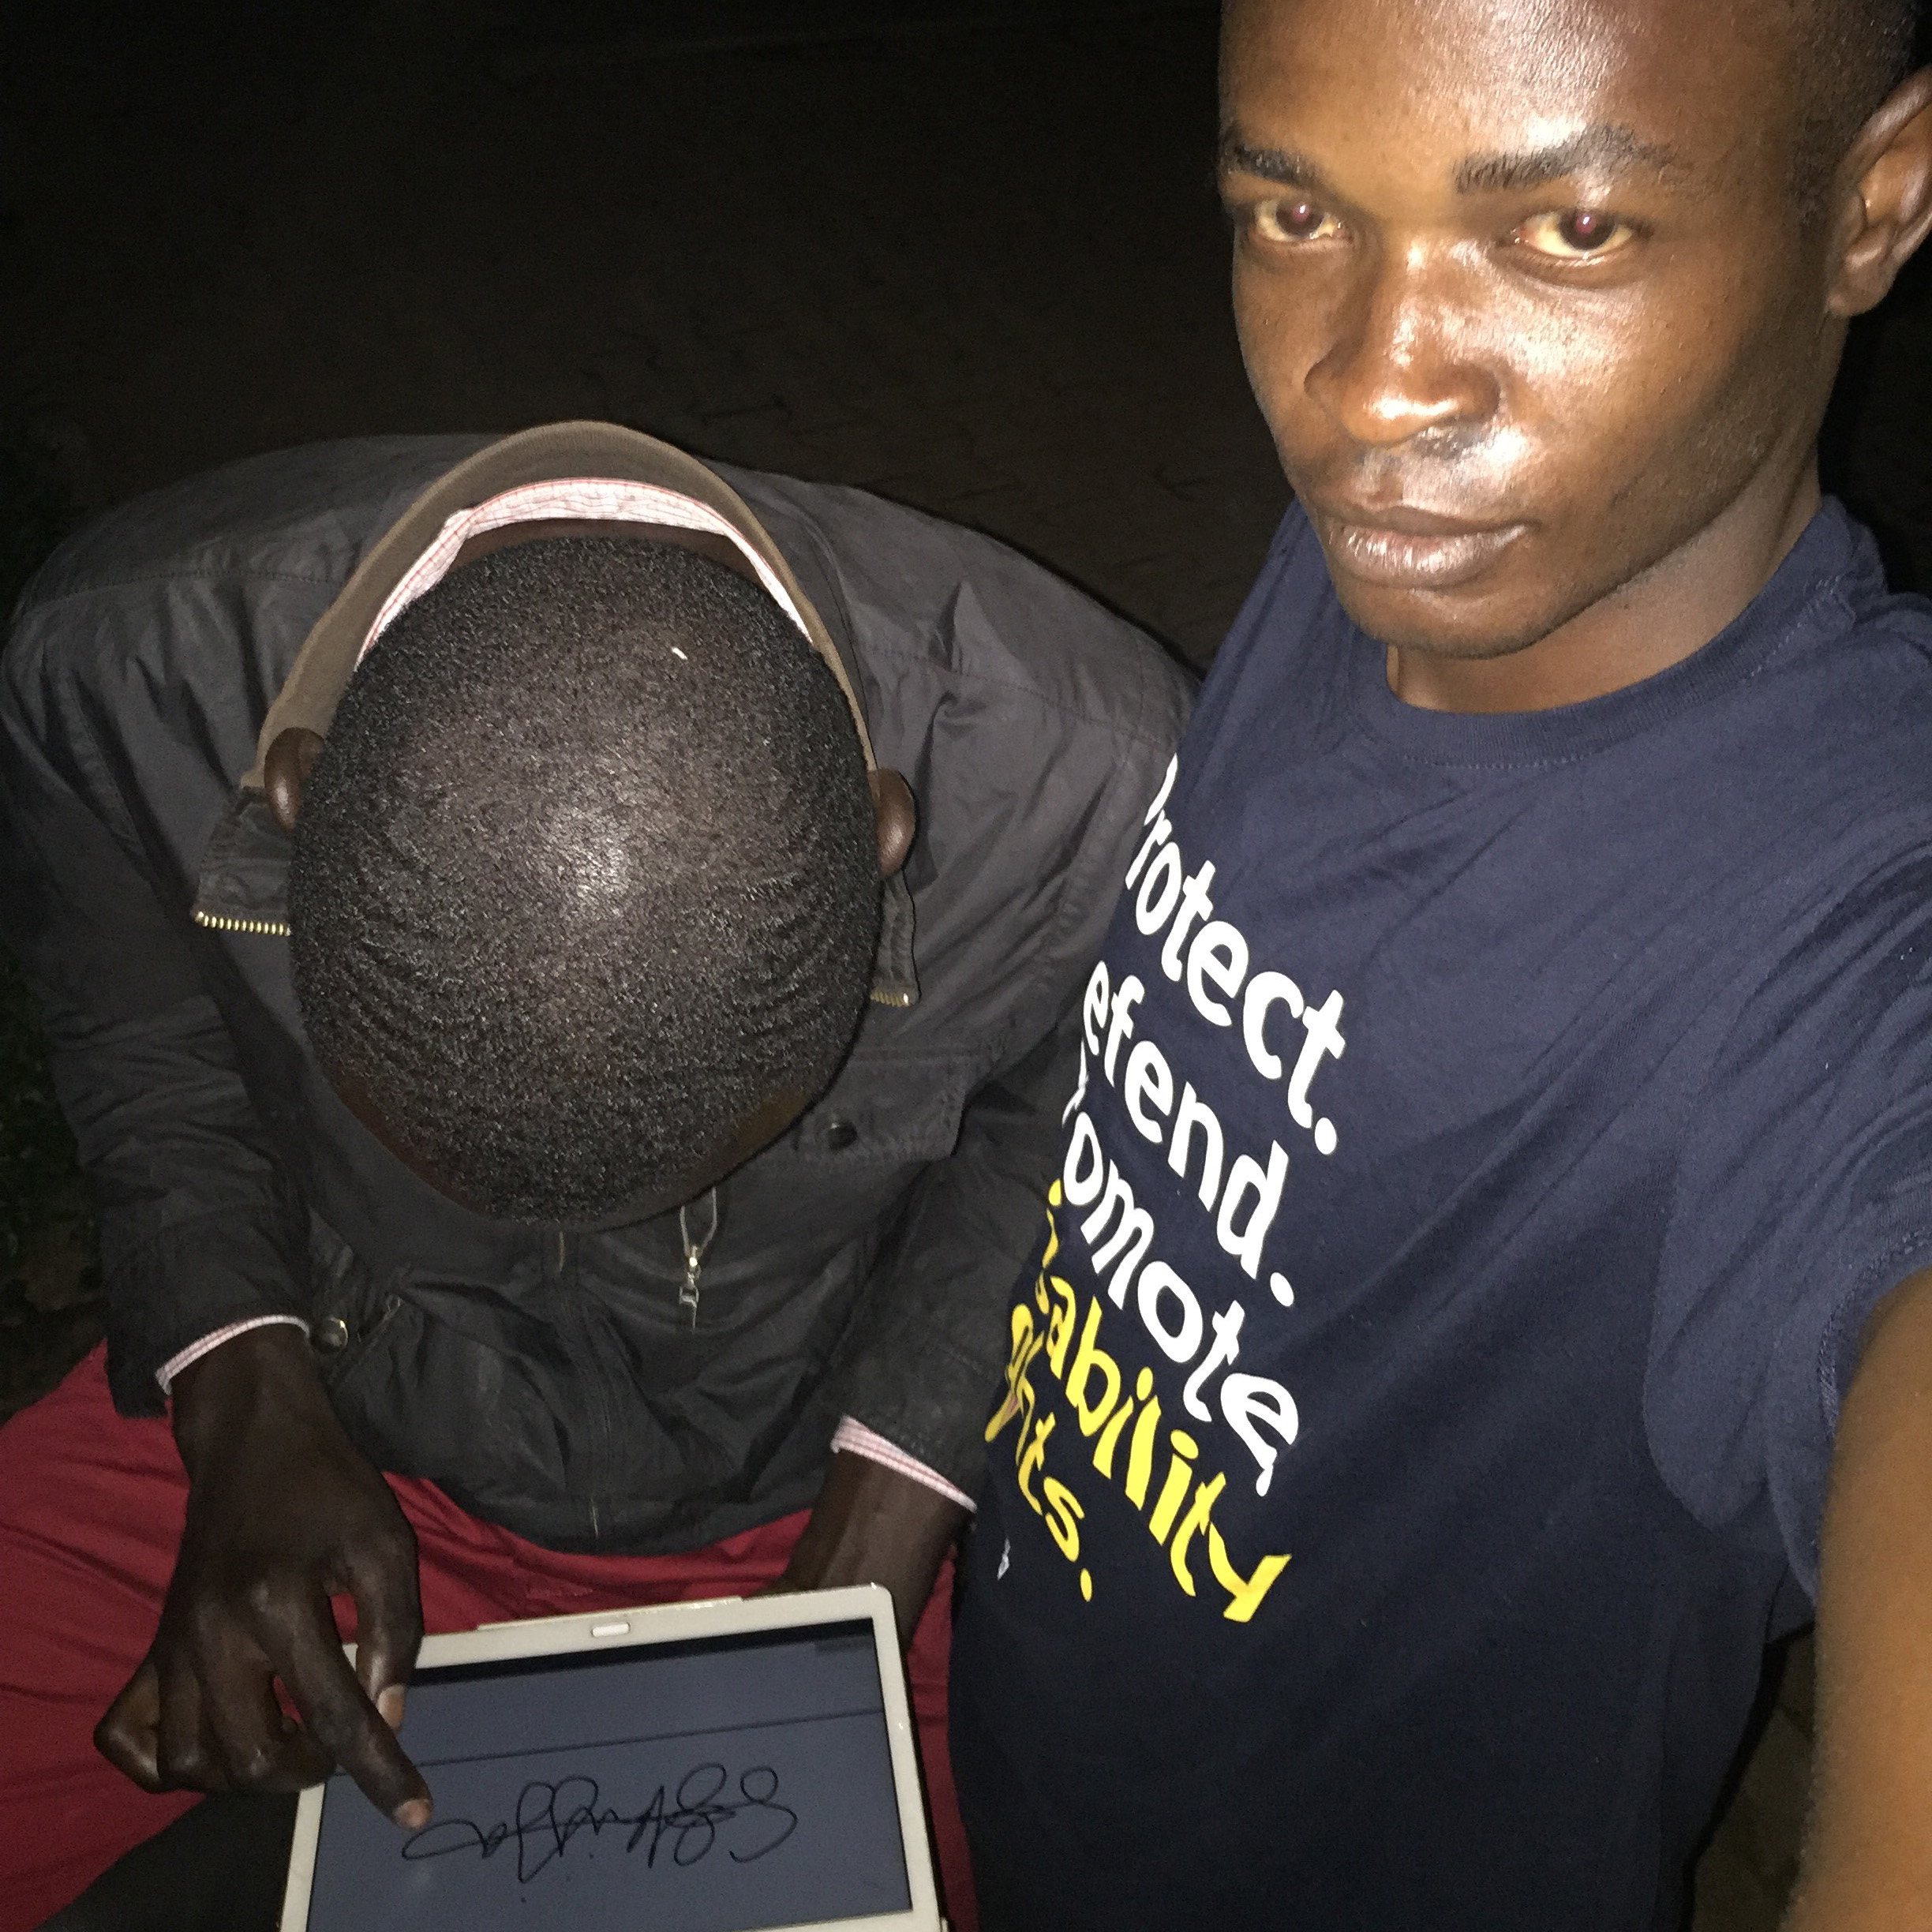 A young man taking a selfie of himself with another man, who is using his finger to sign his name on a tablet screen.